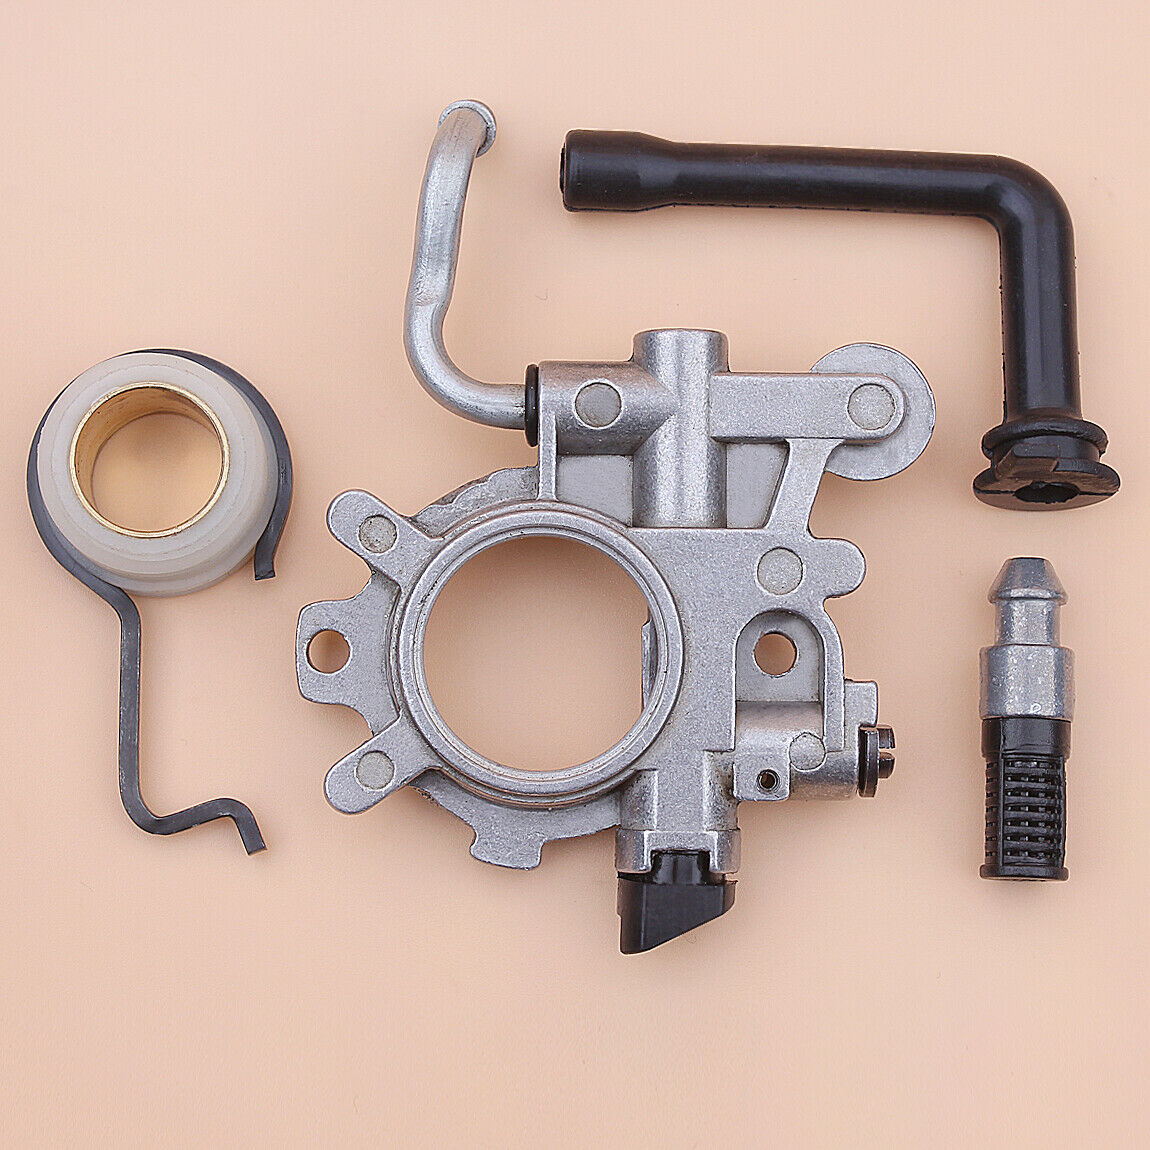 Sealing Ring for Oil Pump Suitable For Stih 088 ms880